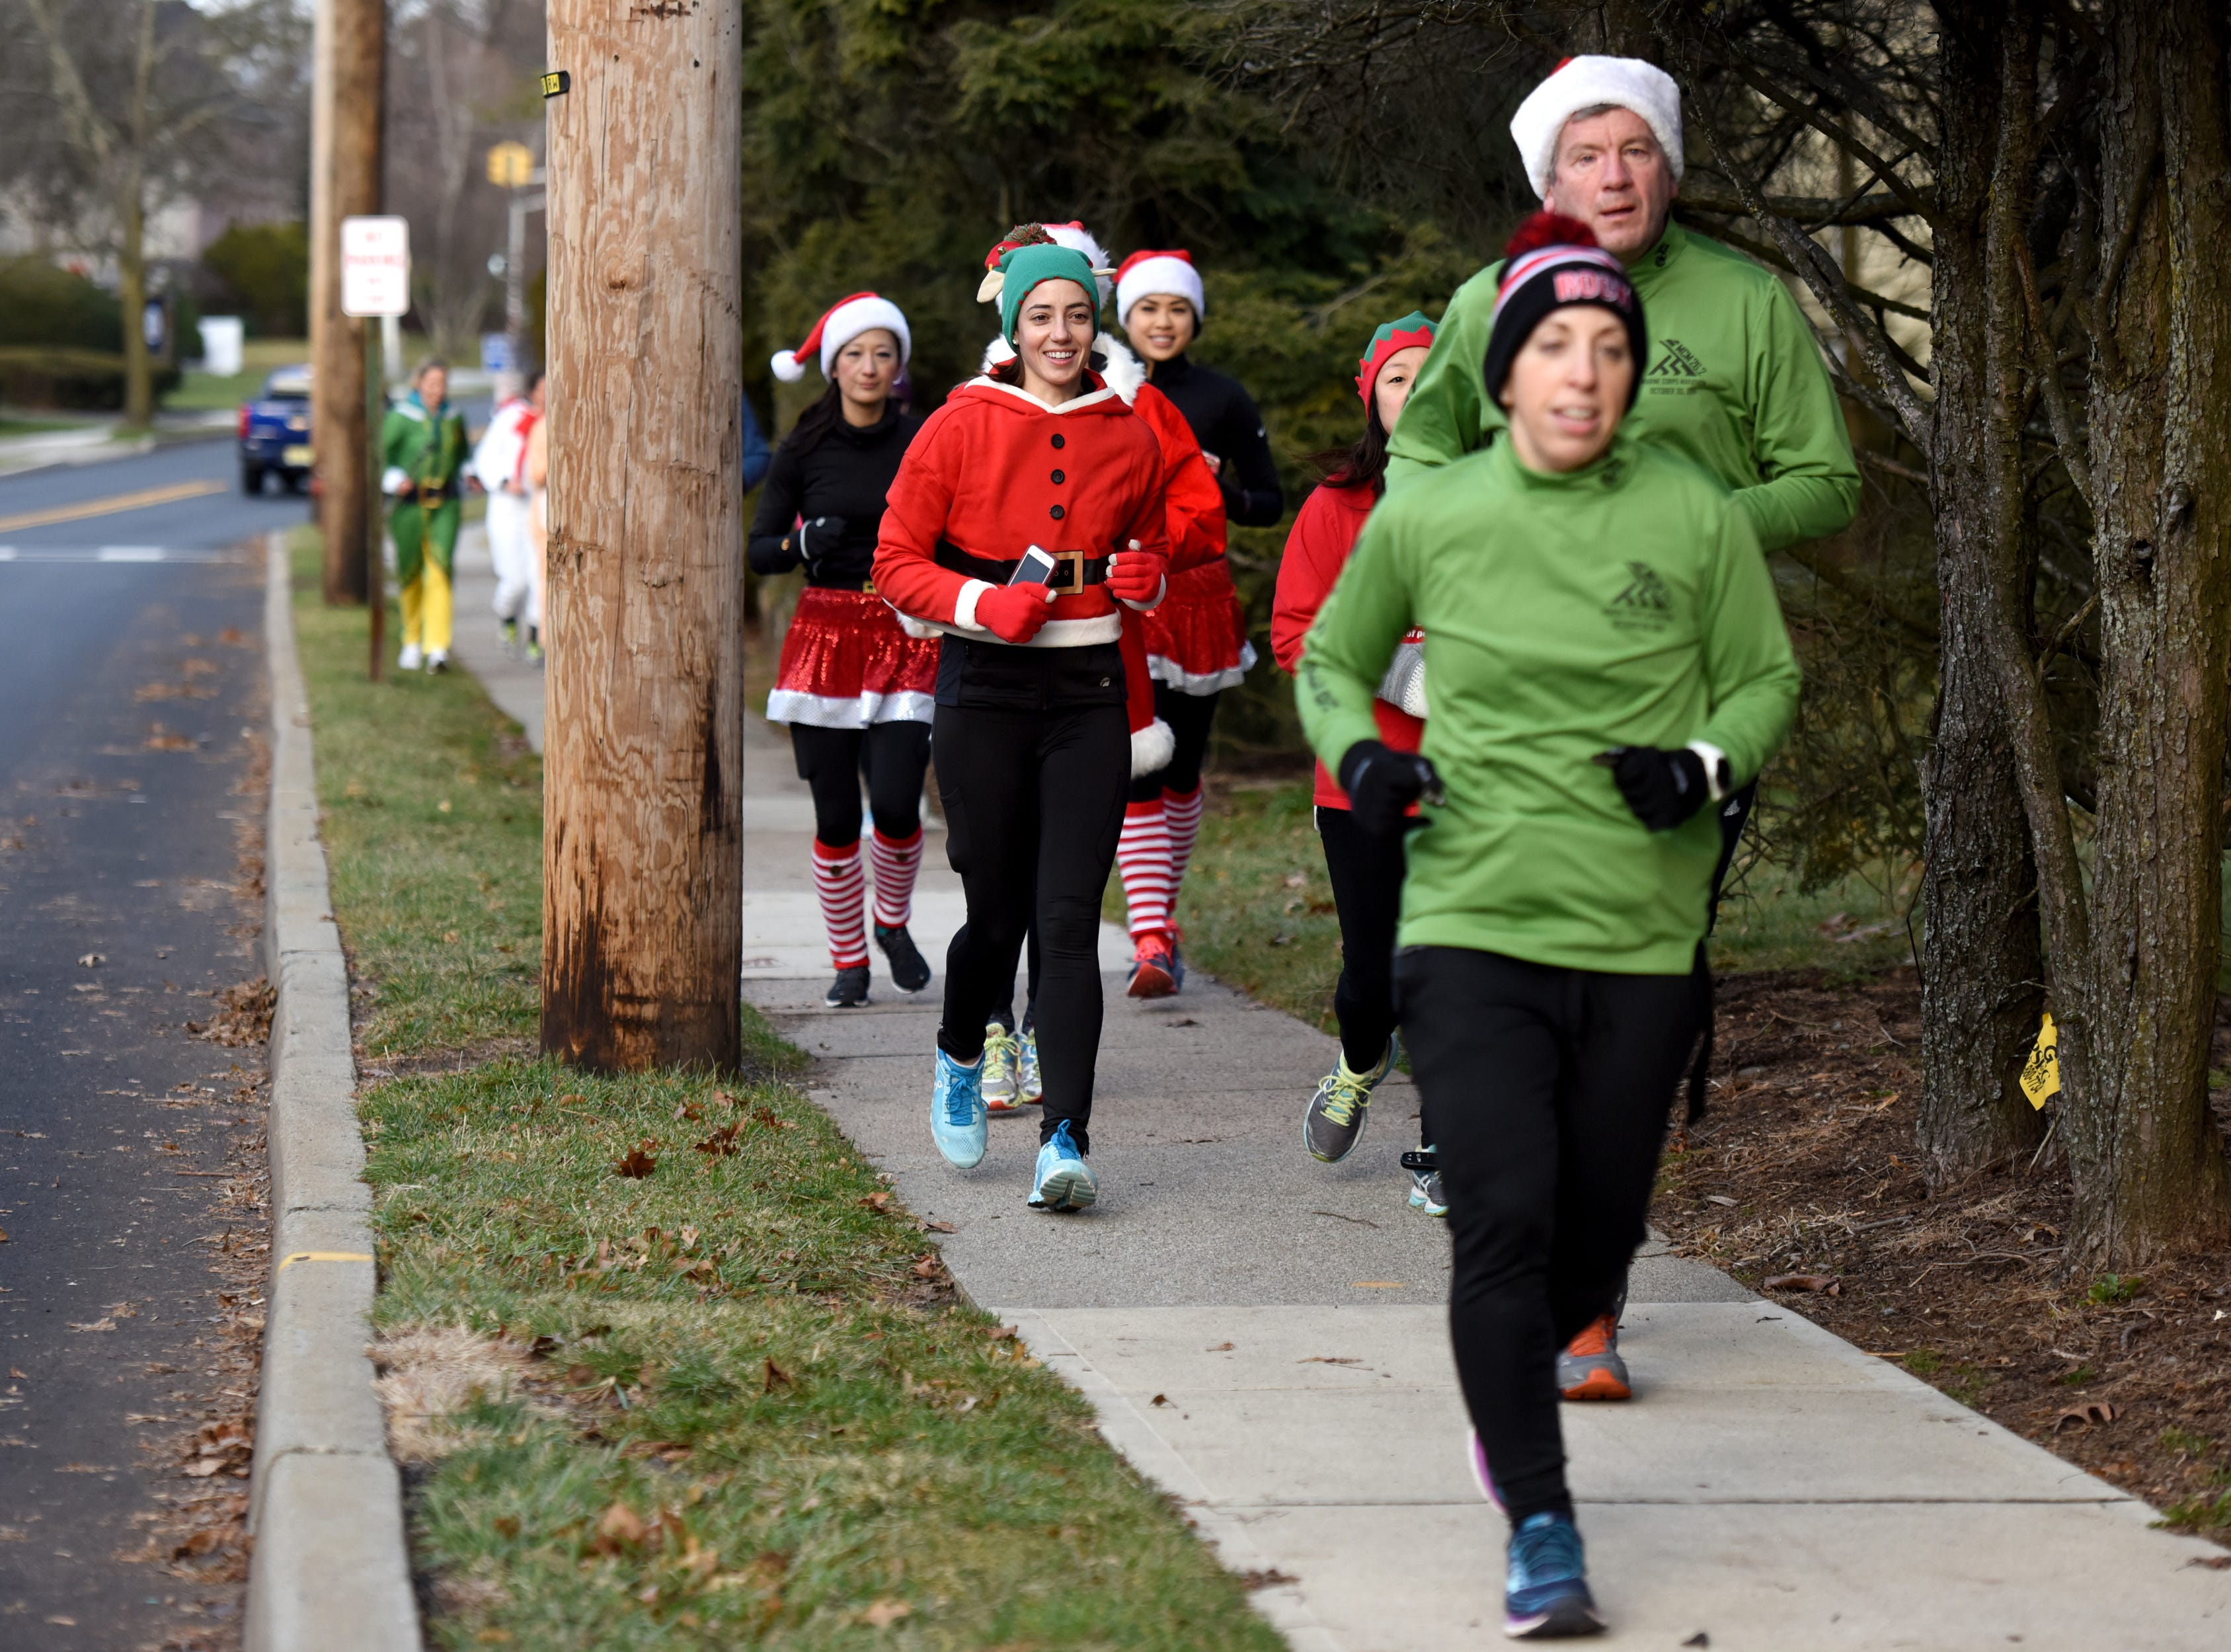 Racefaster Ridgewood organized a fun Santa Run  on Sunday, December 23, 2018. The run left from the store on N. Broad St. and offered runs for varying levels and distances.